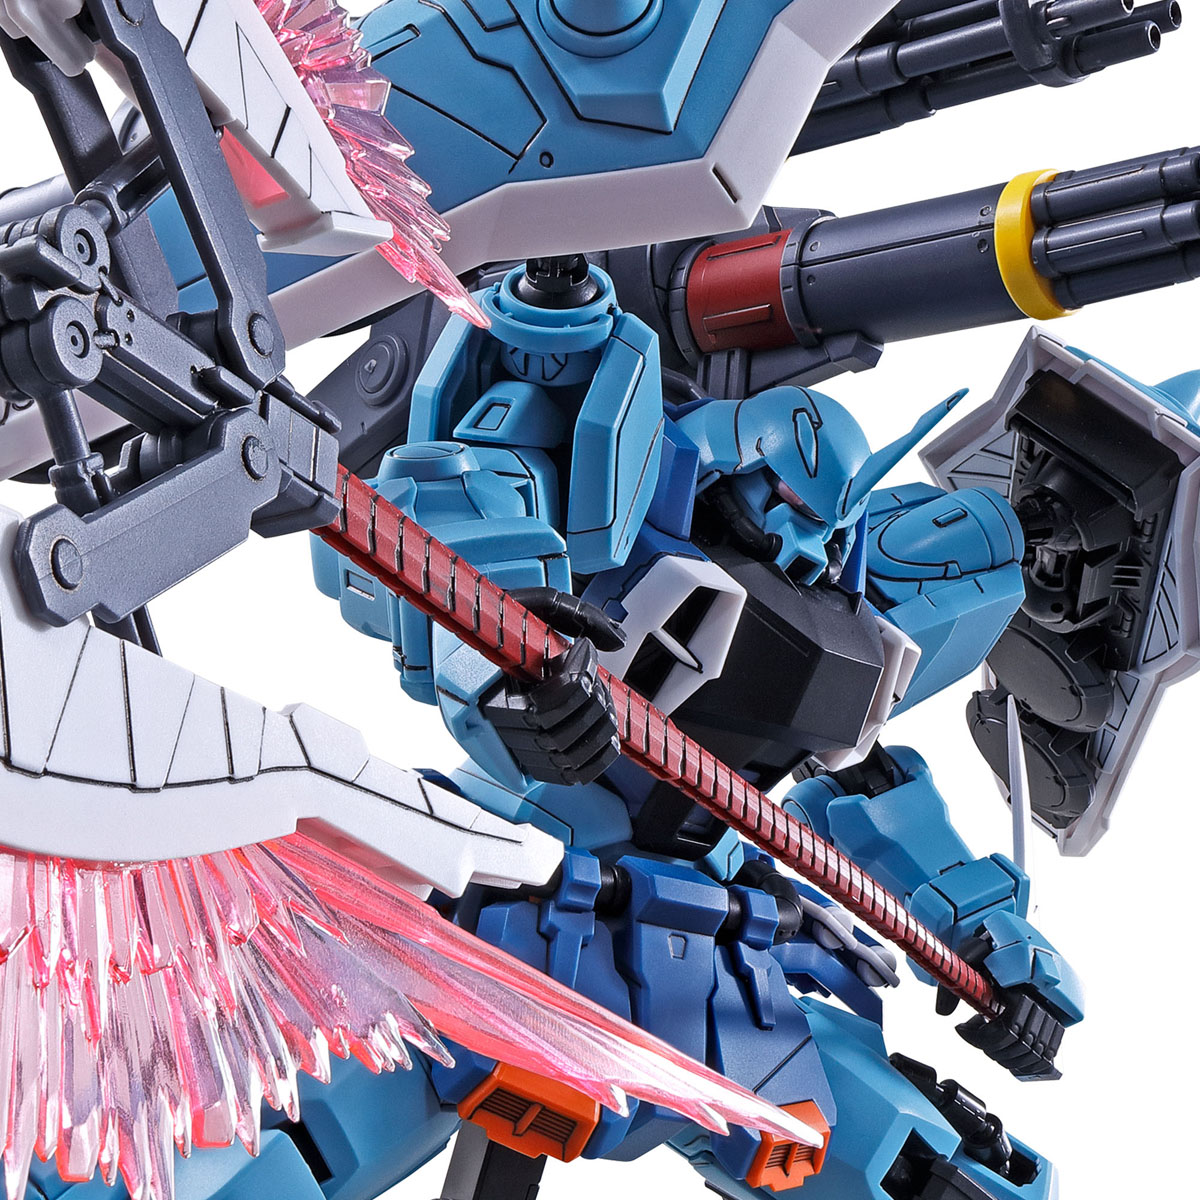 MG 1/100 SLASH ZAKU PHANTOM (YZAK JULE CUSTOM) [Jun 2020 Delivery]